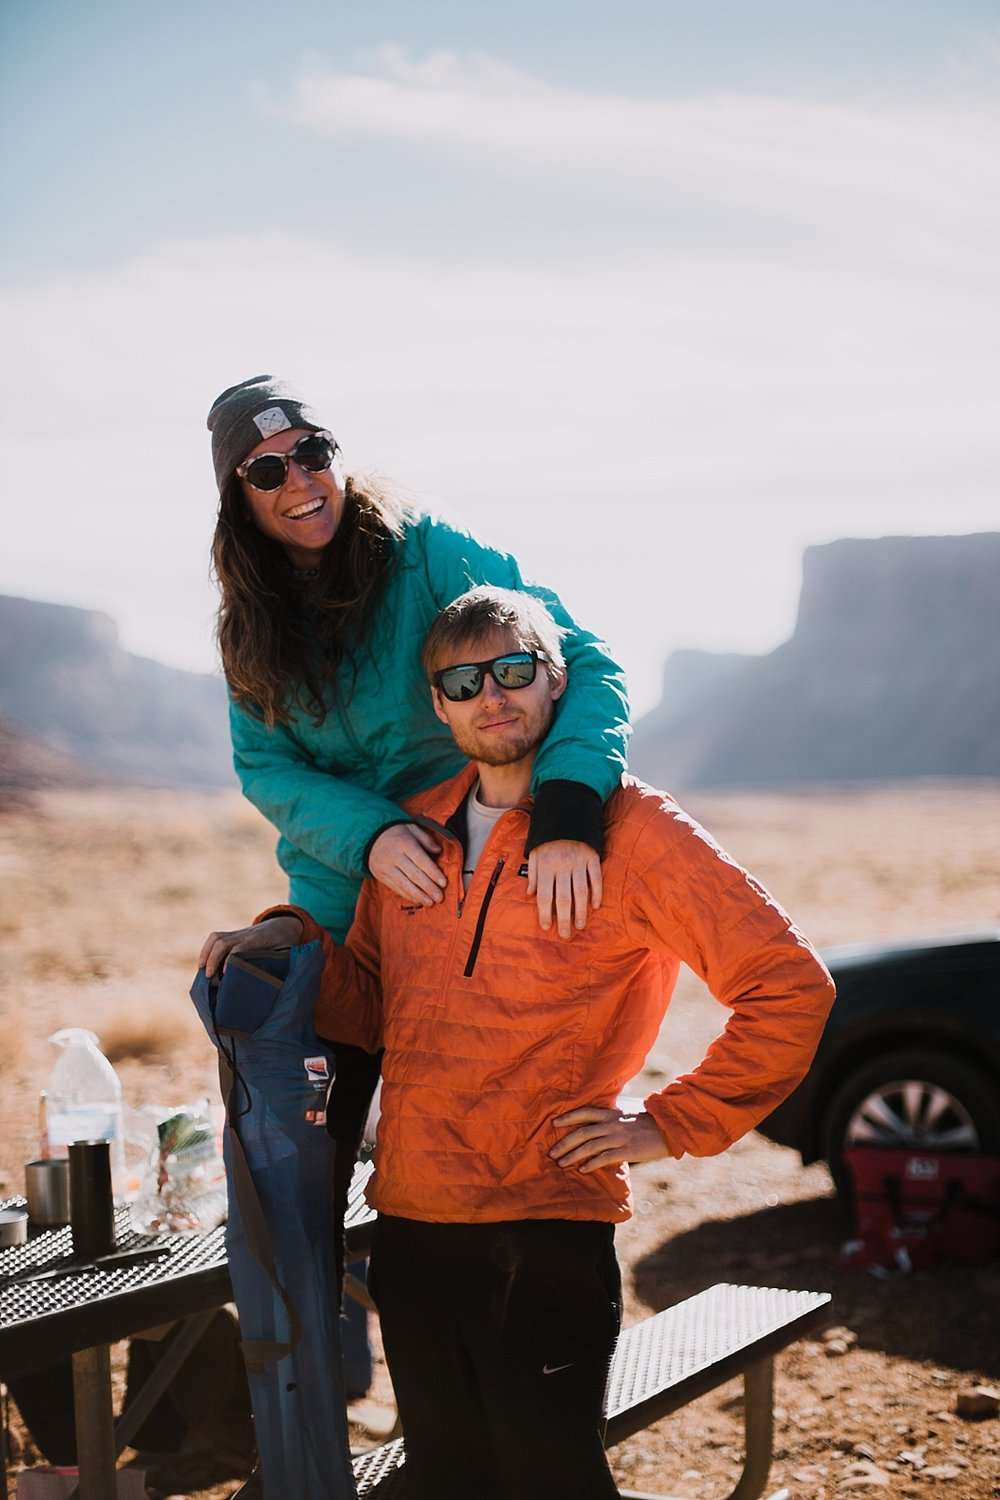 moab-photographer-camp-couples-adventure-session_0004.jpg